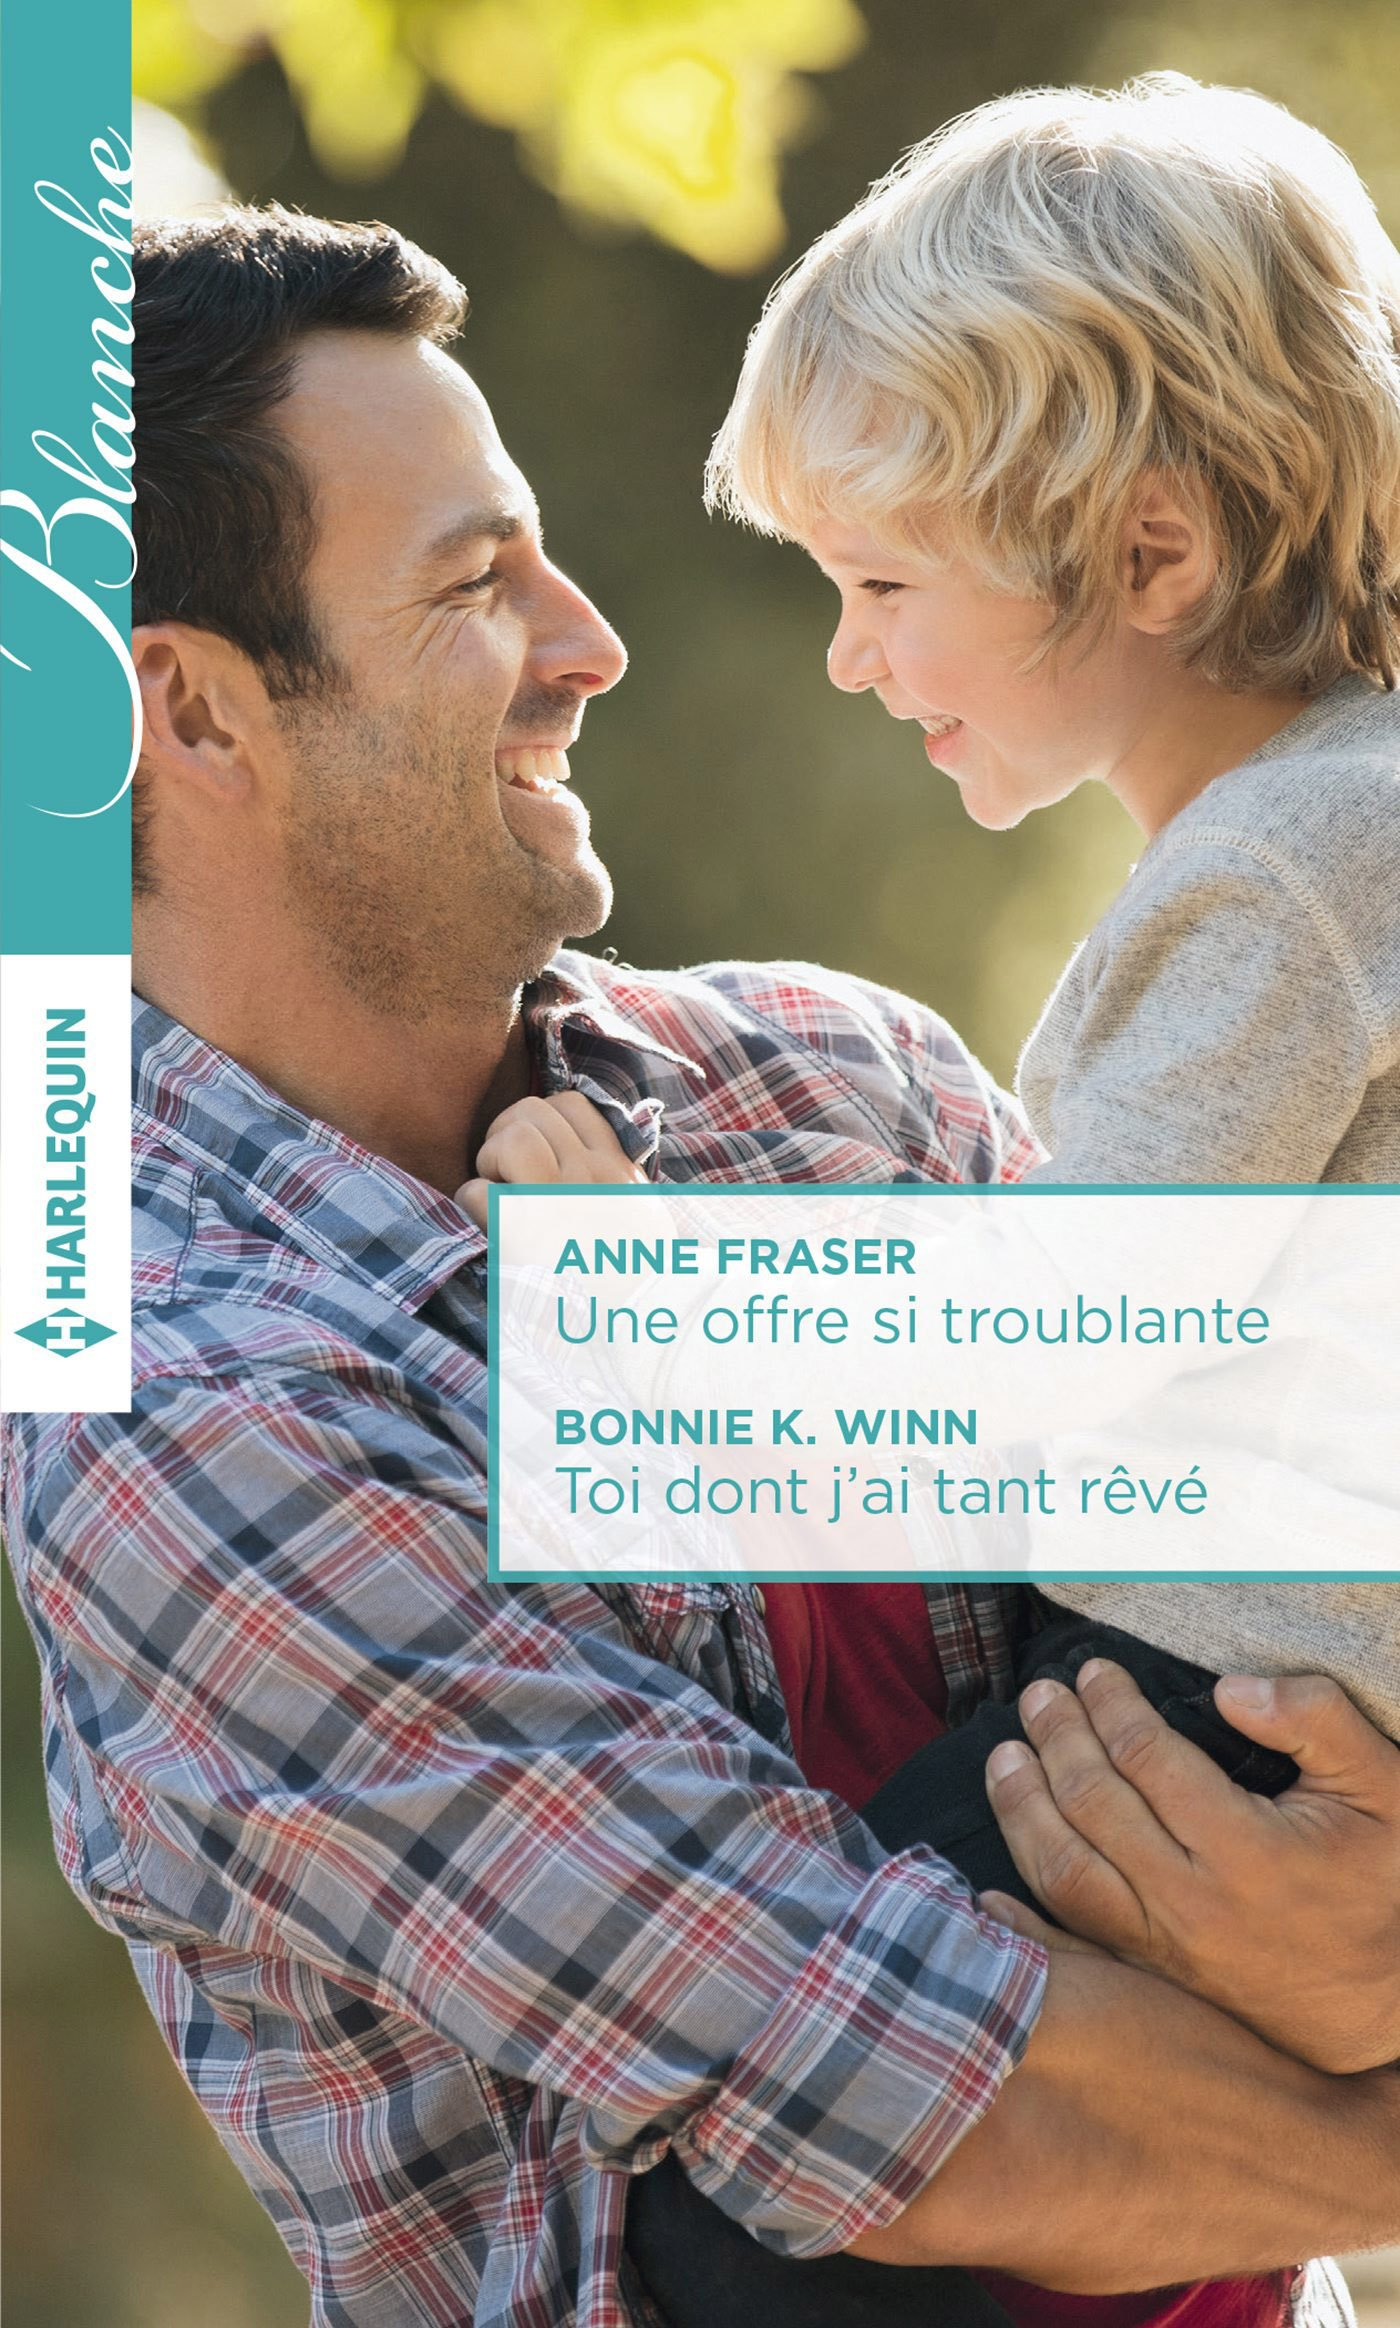 Couverture : Anne Fraser, Une offre si troublante, Harlequin